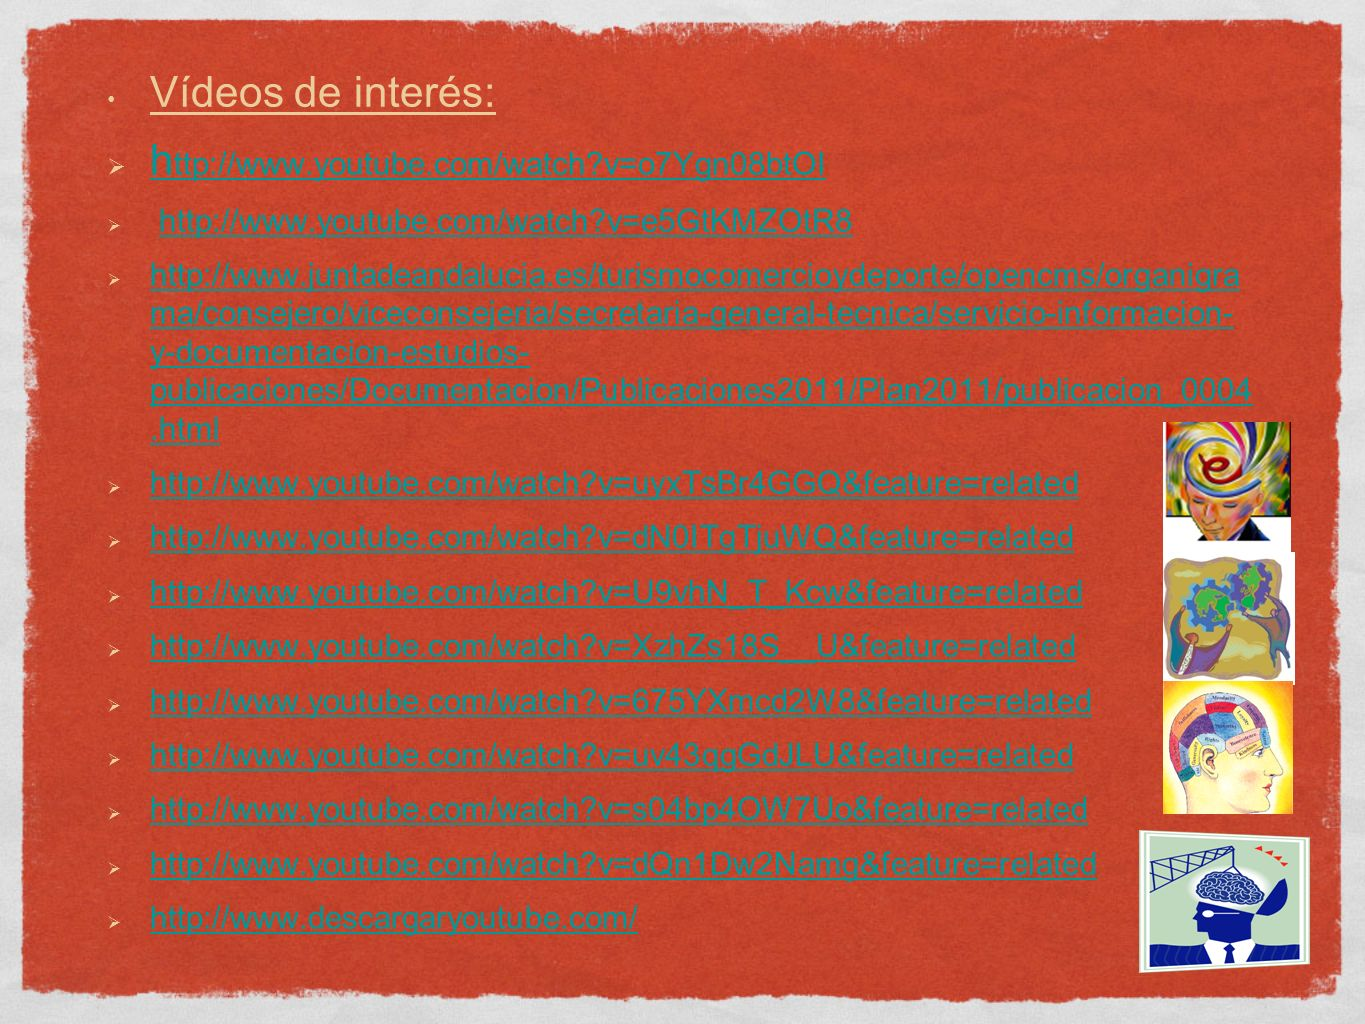 Vídeos de interés: h ttp://www.youtube.com/watch?v=o7Ygn08btOI h ttp://www.youtube.com/watch?v=o7Ygn08btOI http://www.youtube.com/watch?v=e5GtKMZOtR8